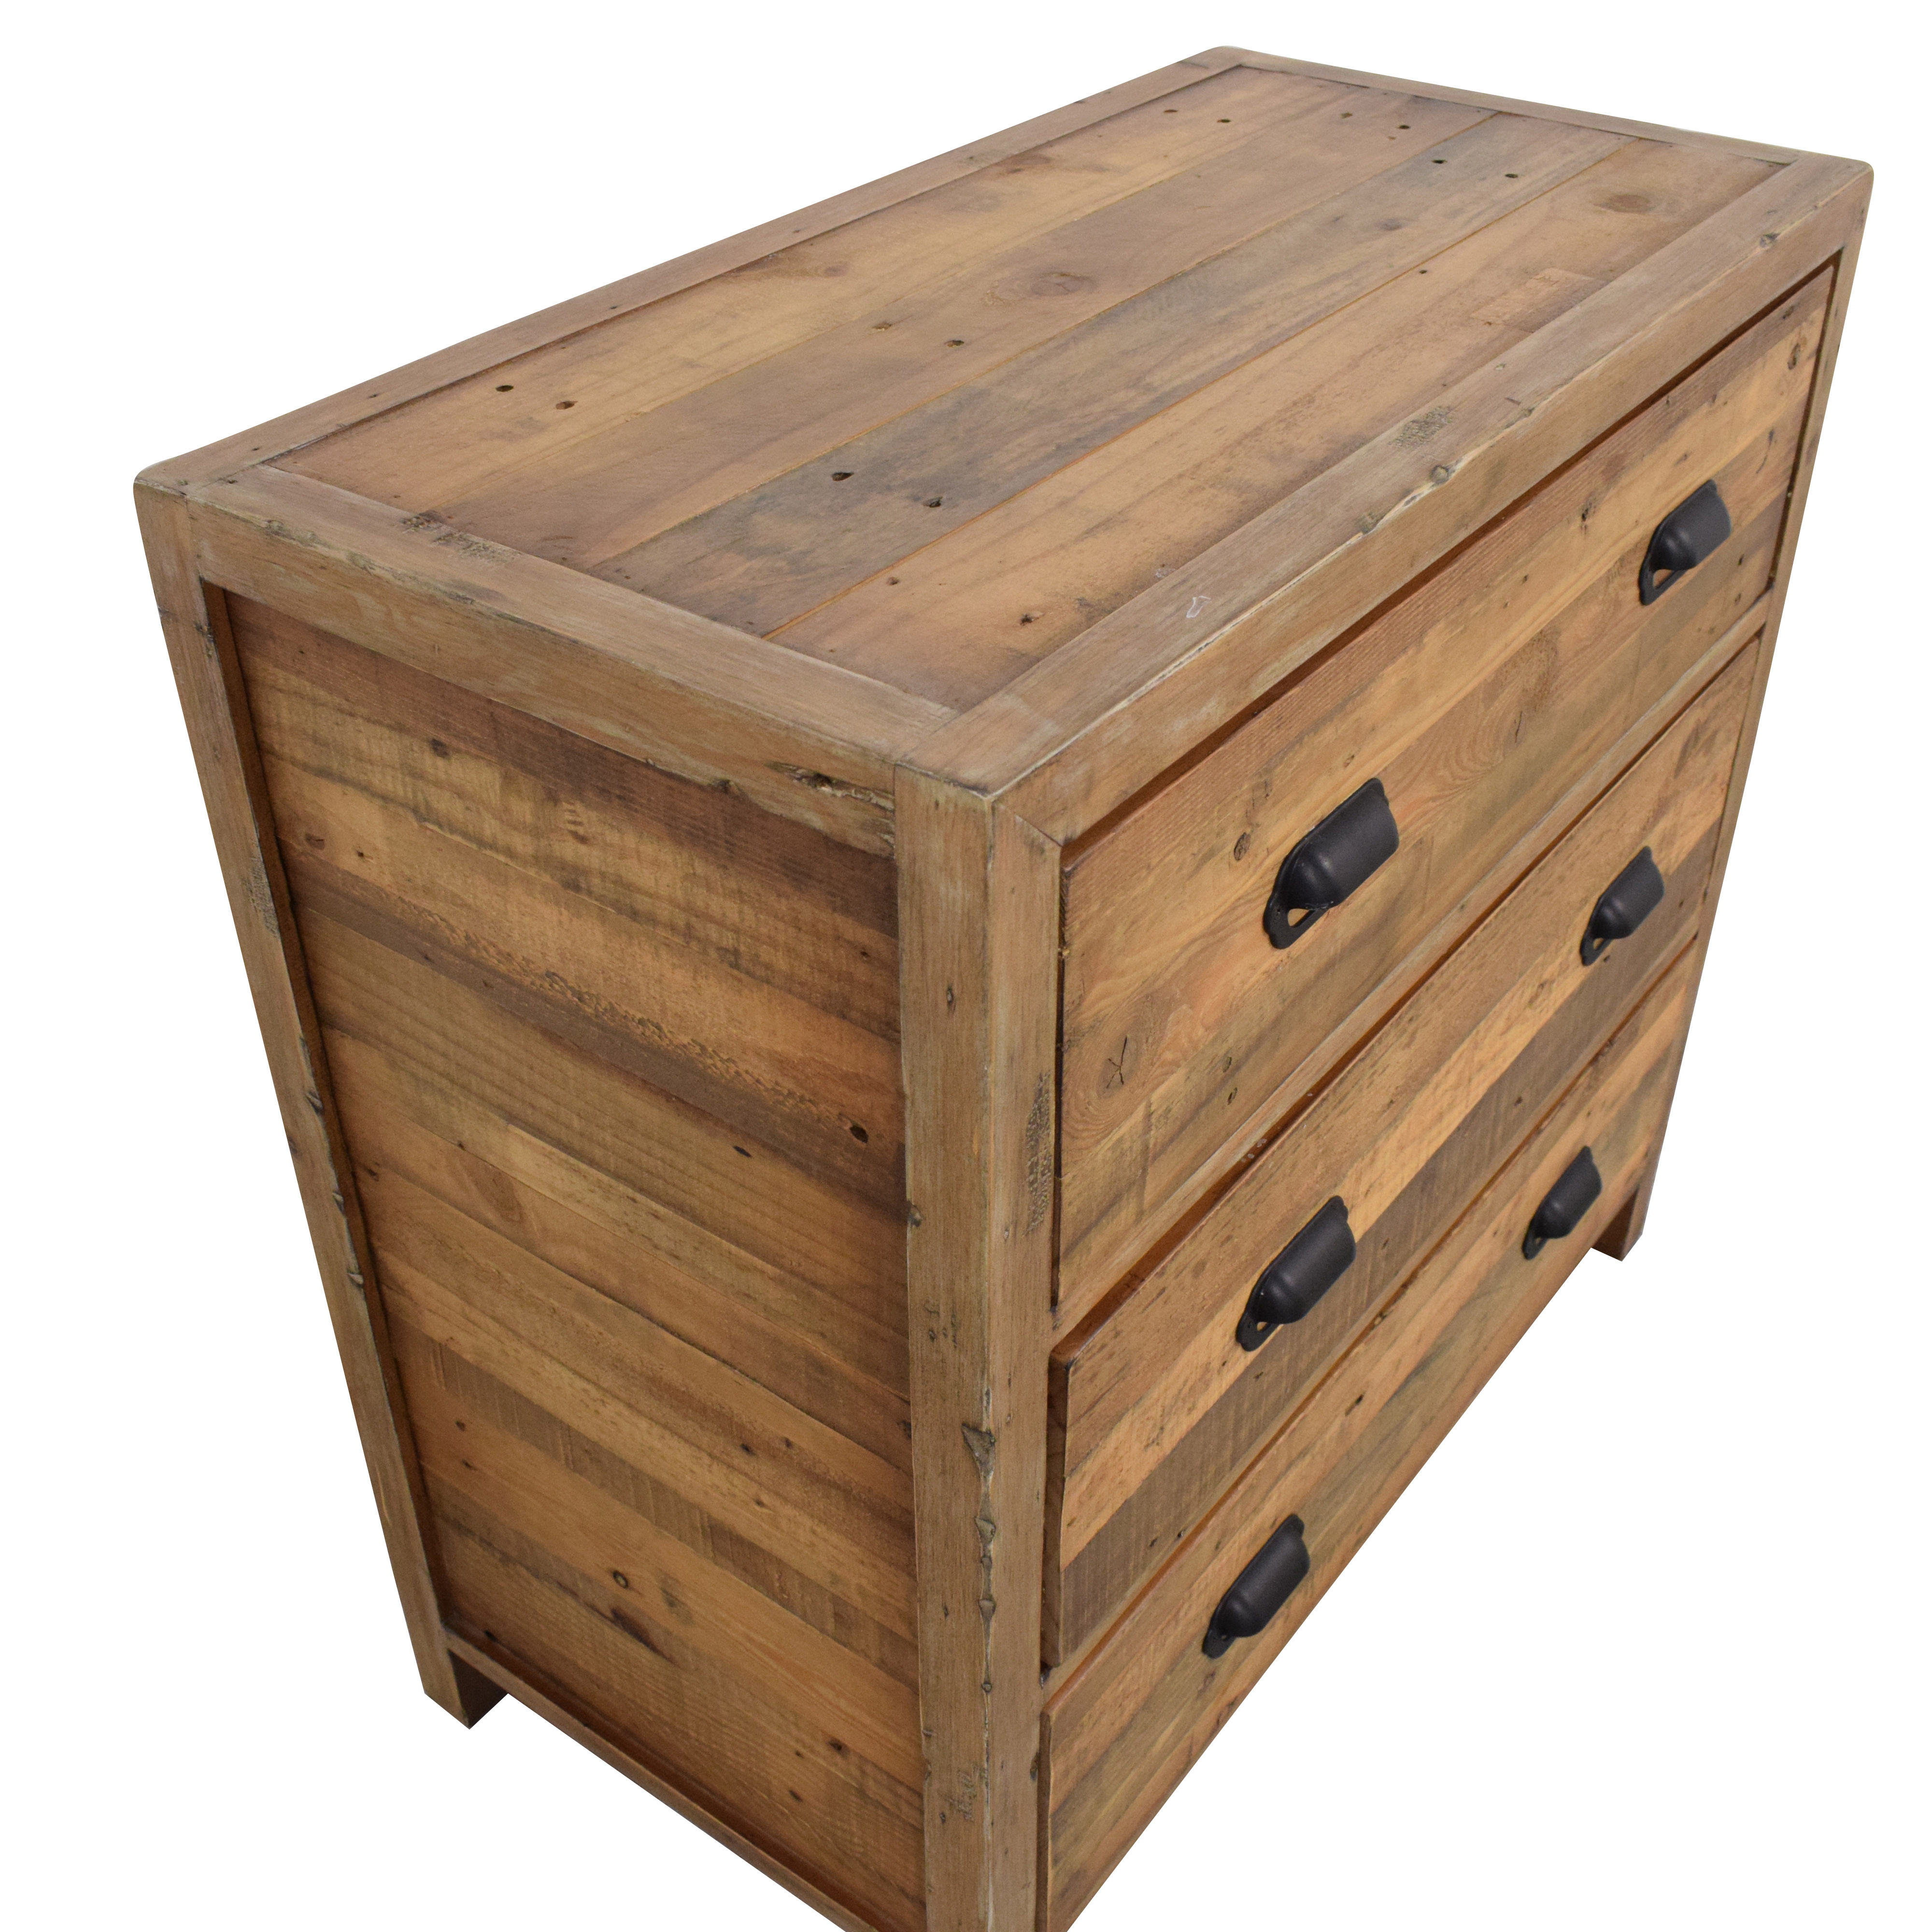 PGT Reclaimed PGT Reclaimed Chest of Drawers coupon